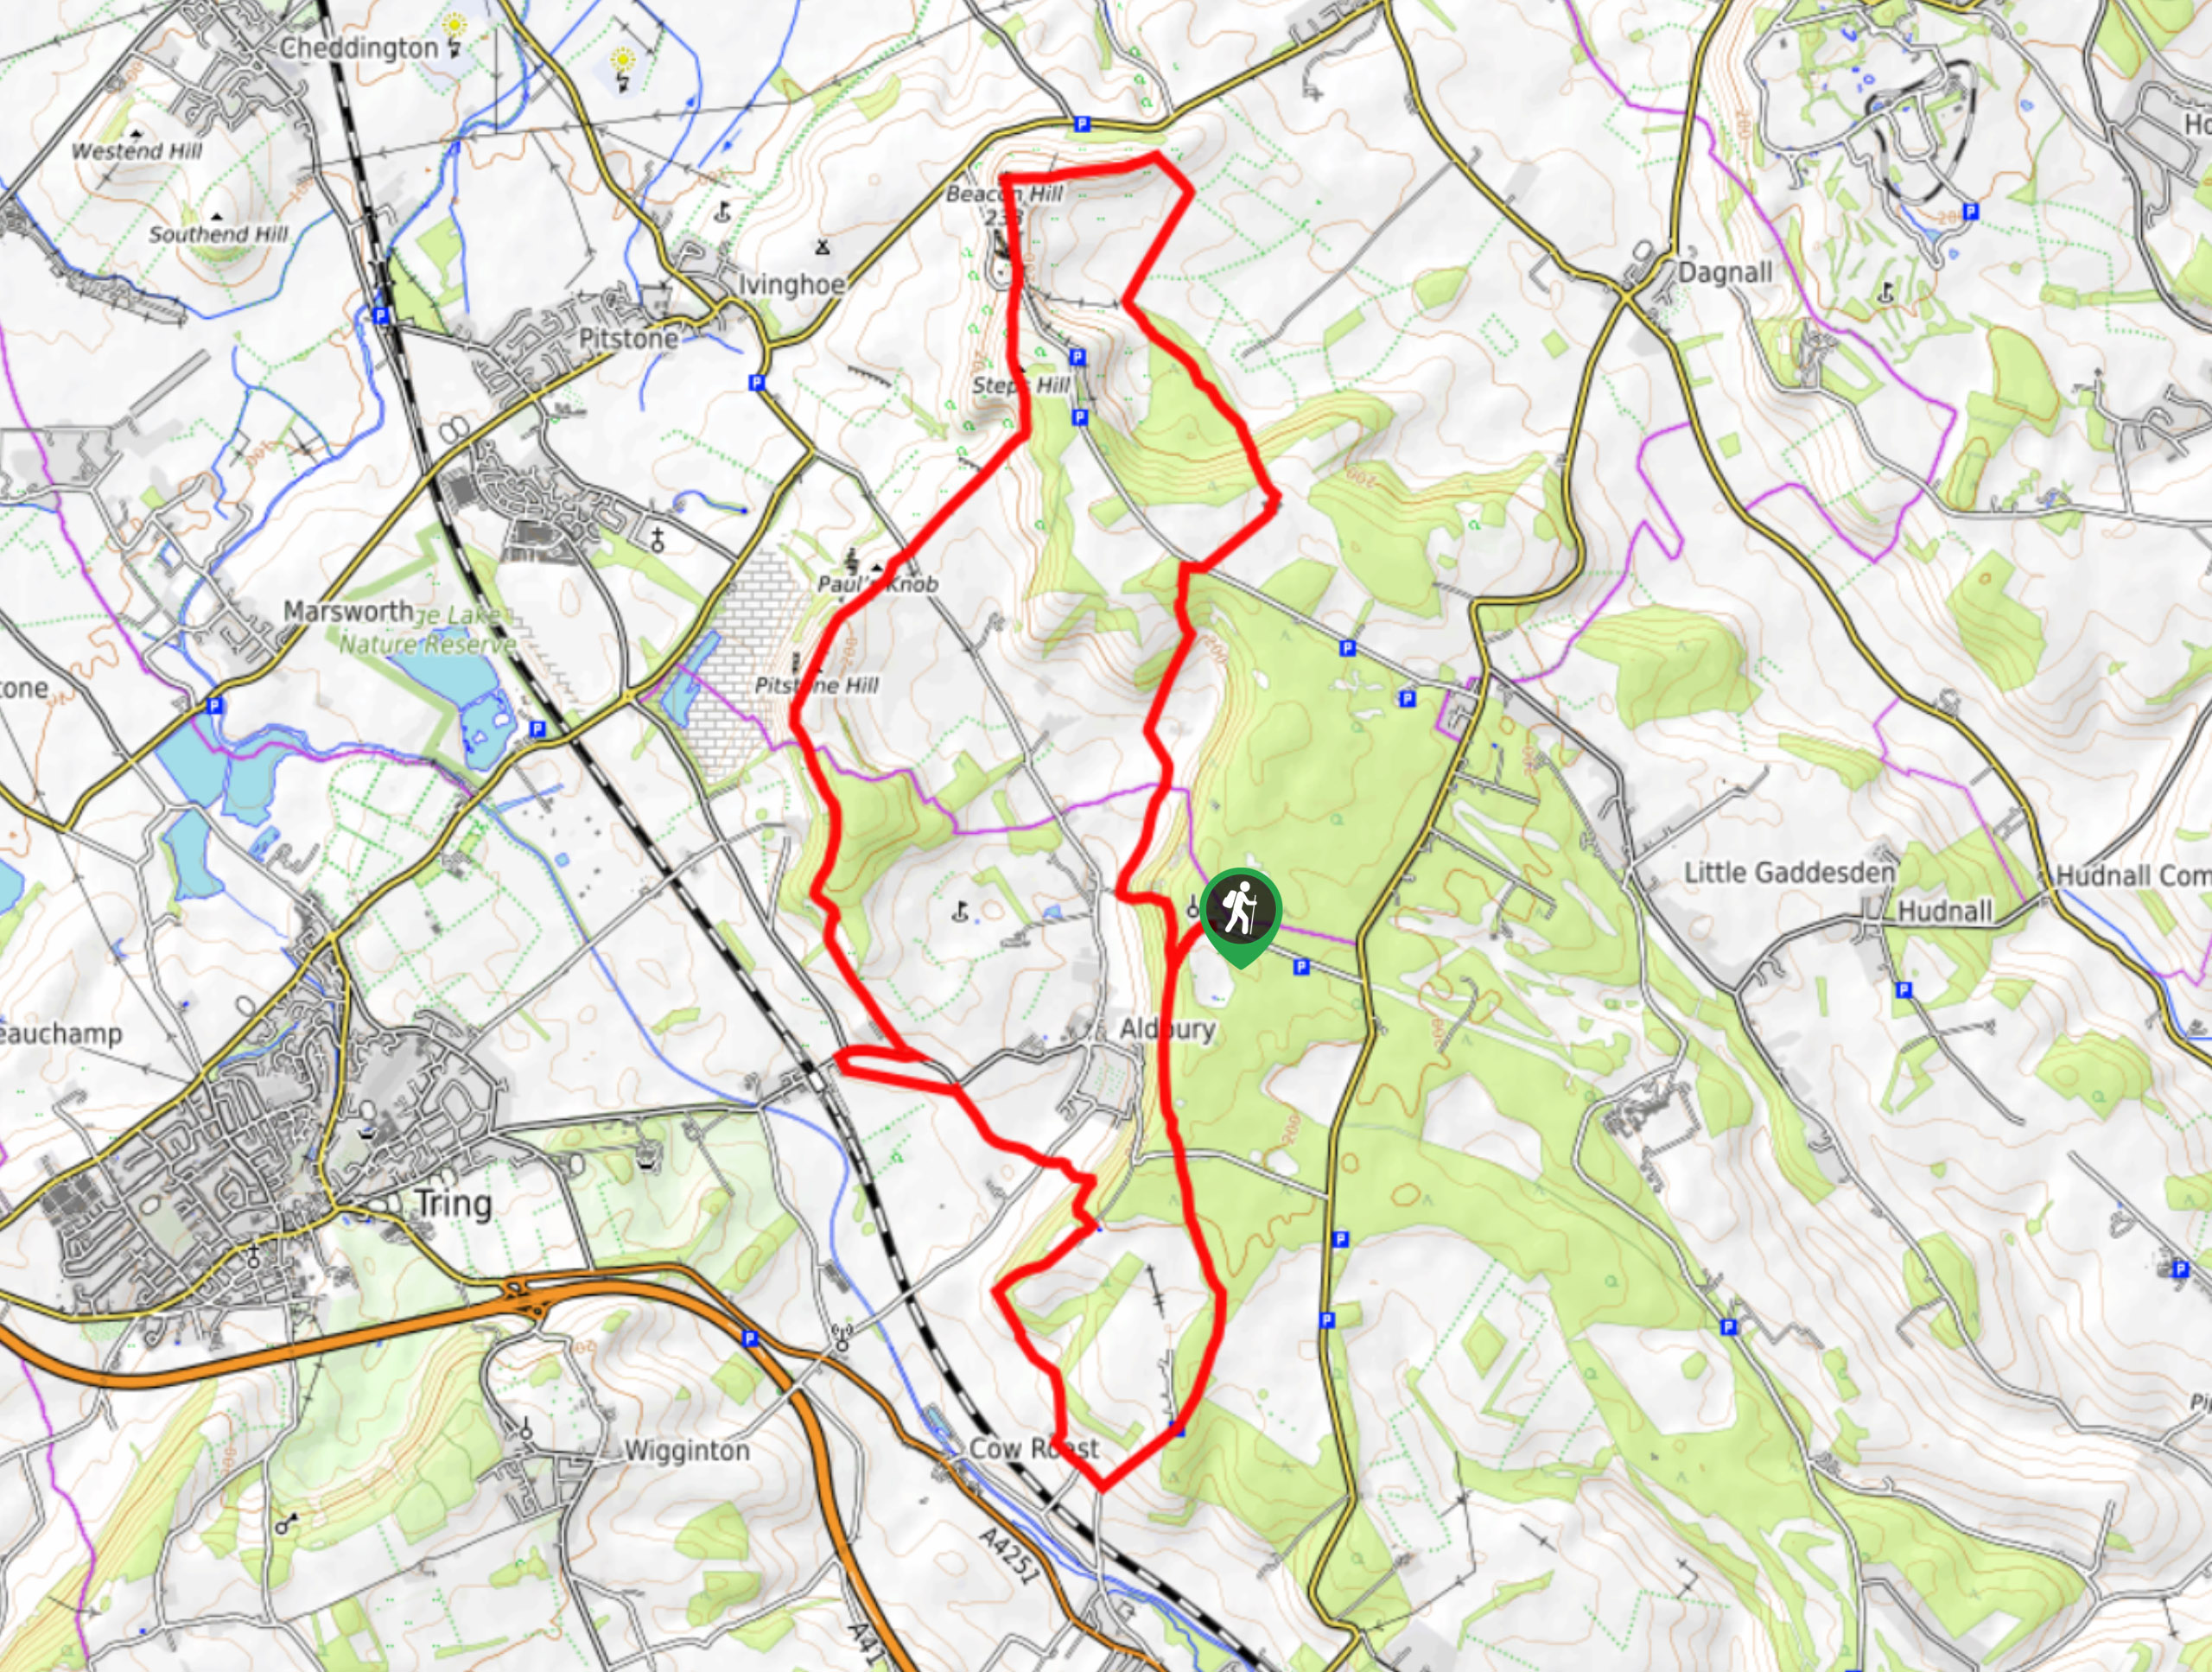 Clipper Down, Steps Hill, and Pittone Hill Loop Map